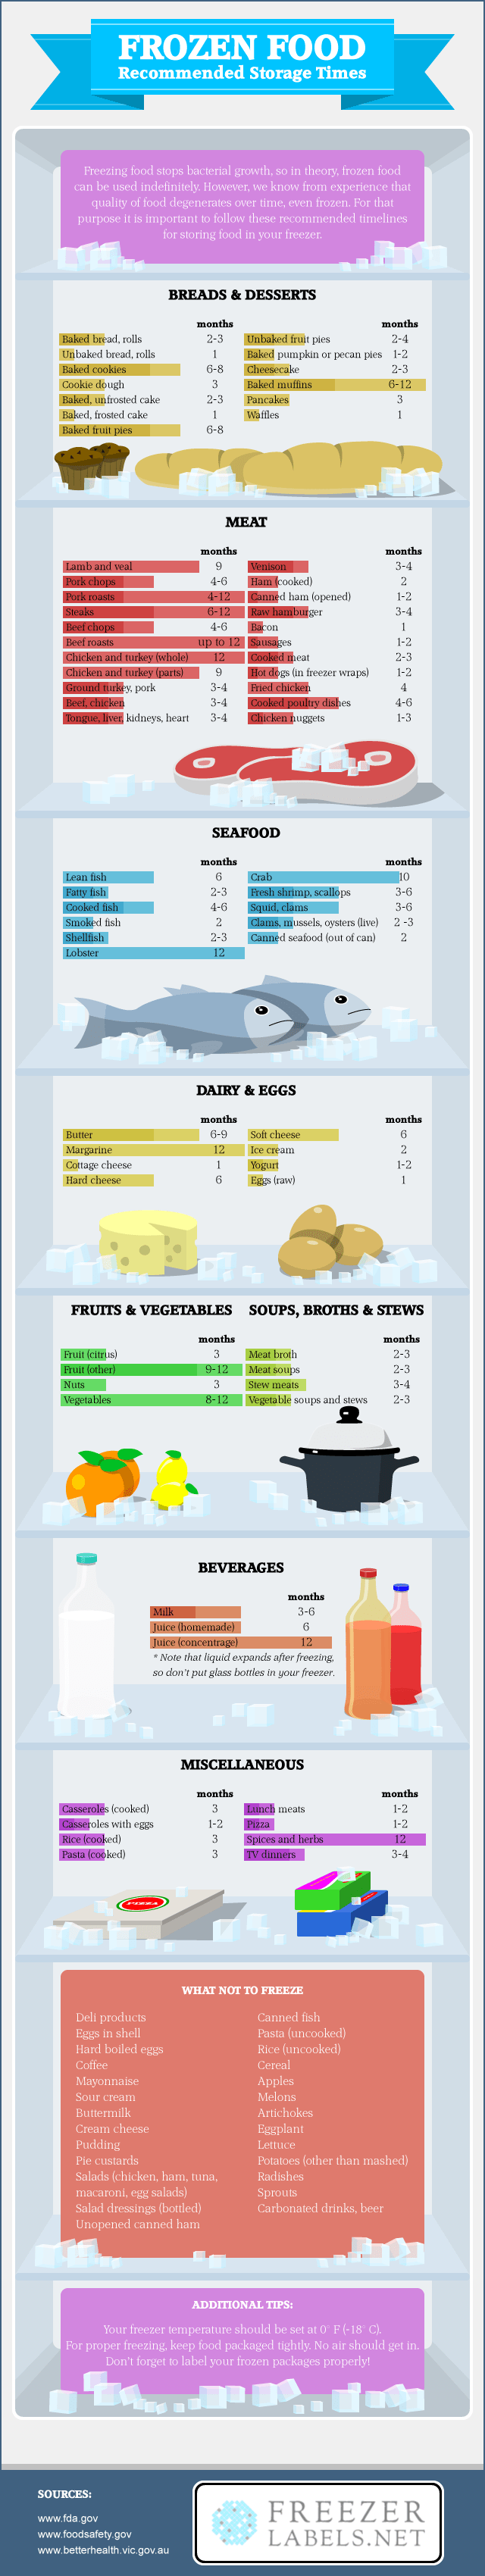 Frozen Food - Recommended Storage Times